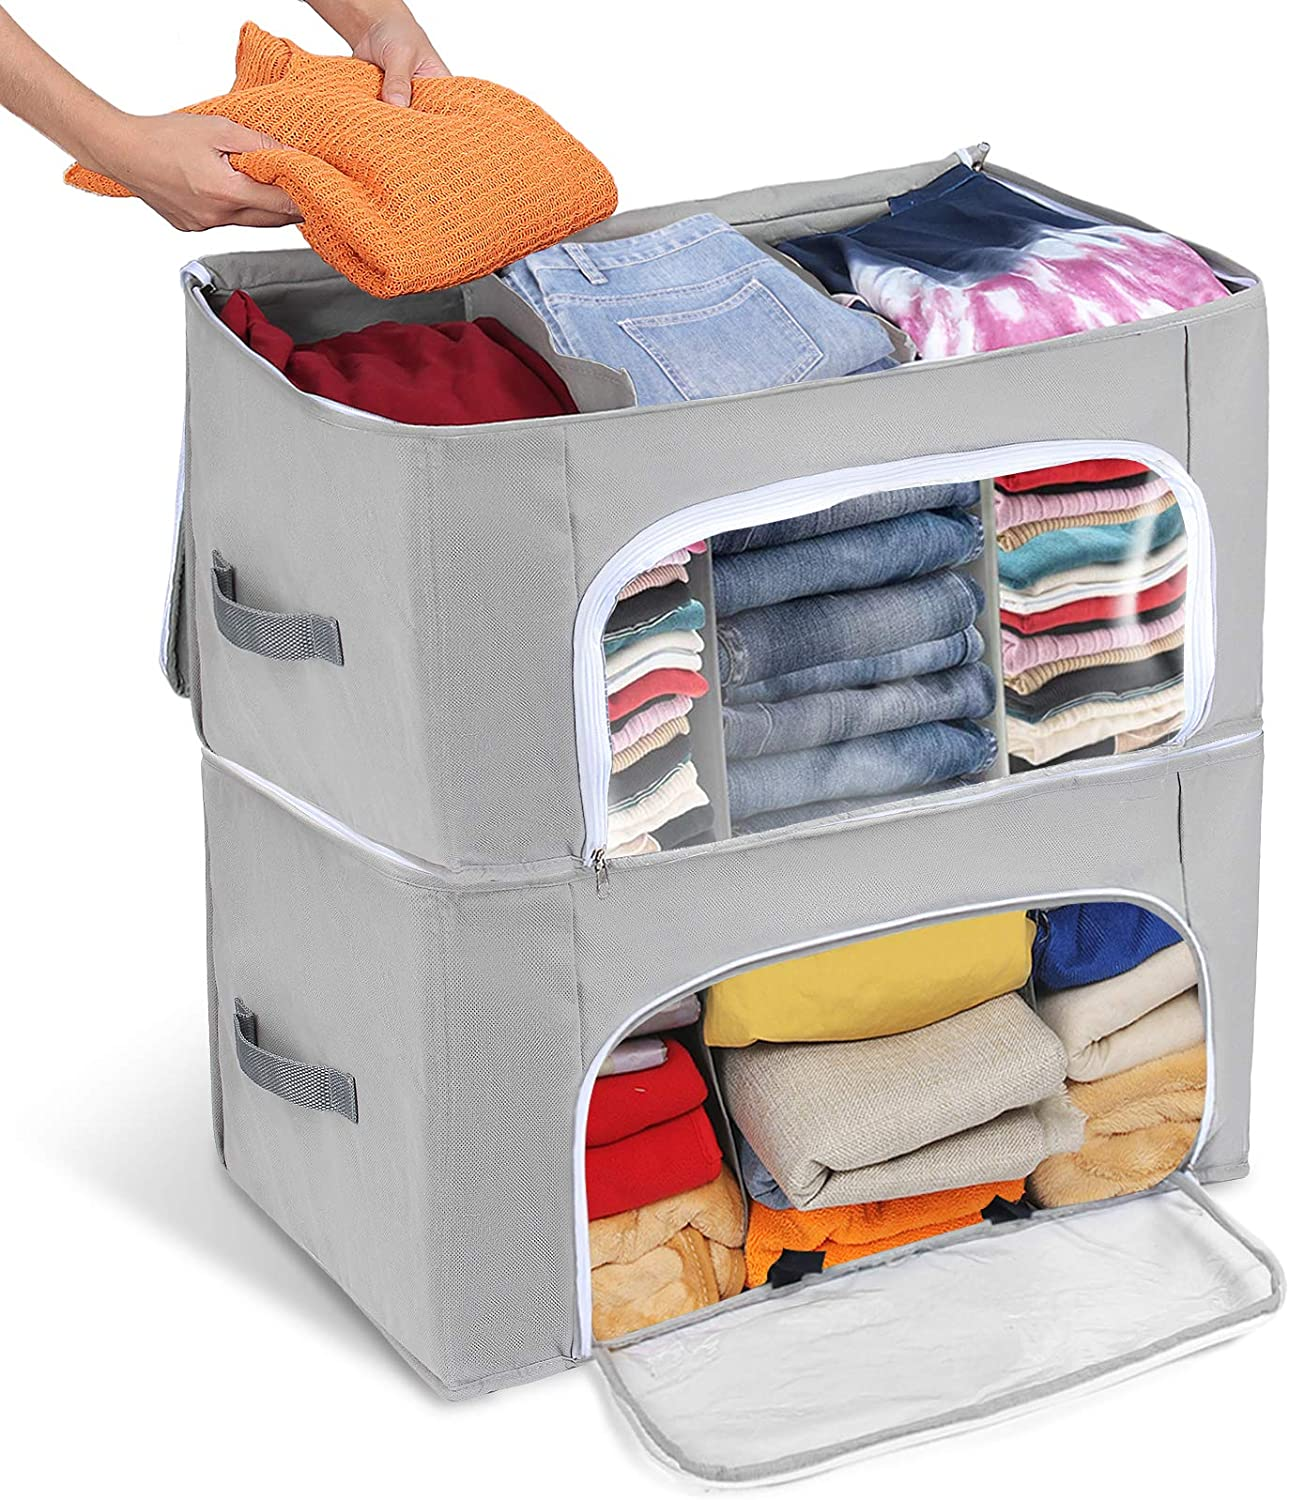 Janolia Clothes Storage Bag, Folding Blanket for Bedspreads, Eco-friendly, Non-Woven Bamboo Fabric WAS £18.99 NOW £12.99 w/code Janolia006 @ Amazon